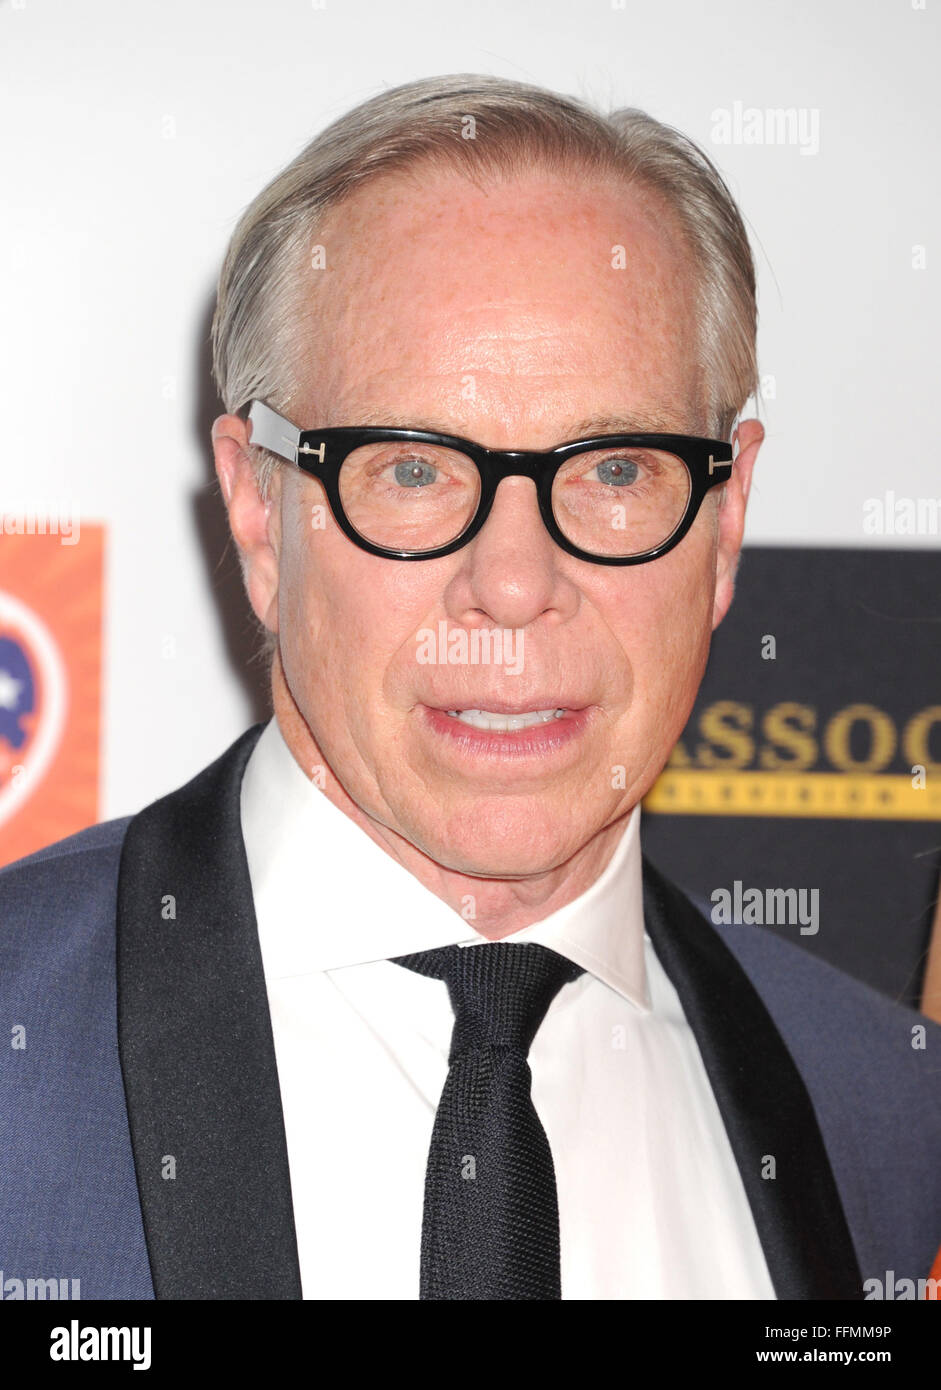 Designer Tommy Hilfiger arrives at the 22nd Annual Race To Erase MS at the  Hyatt Regency 30d3b09a9b8